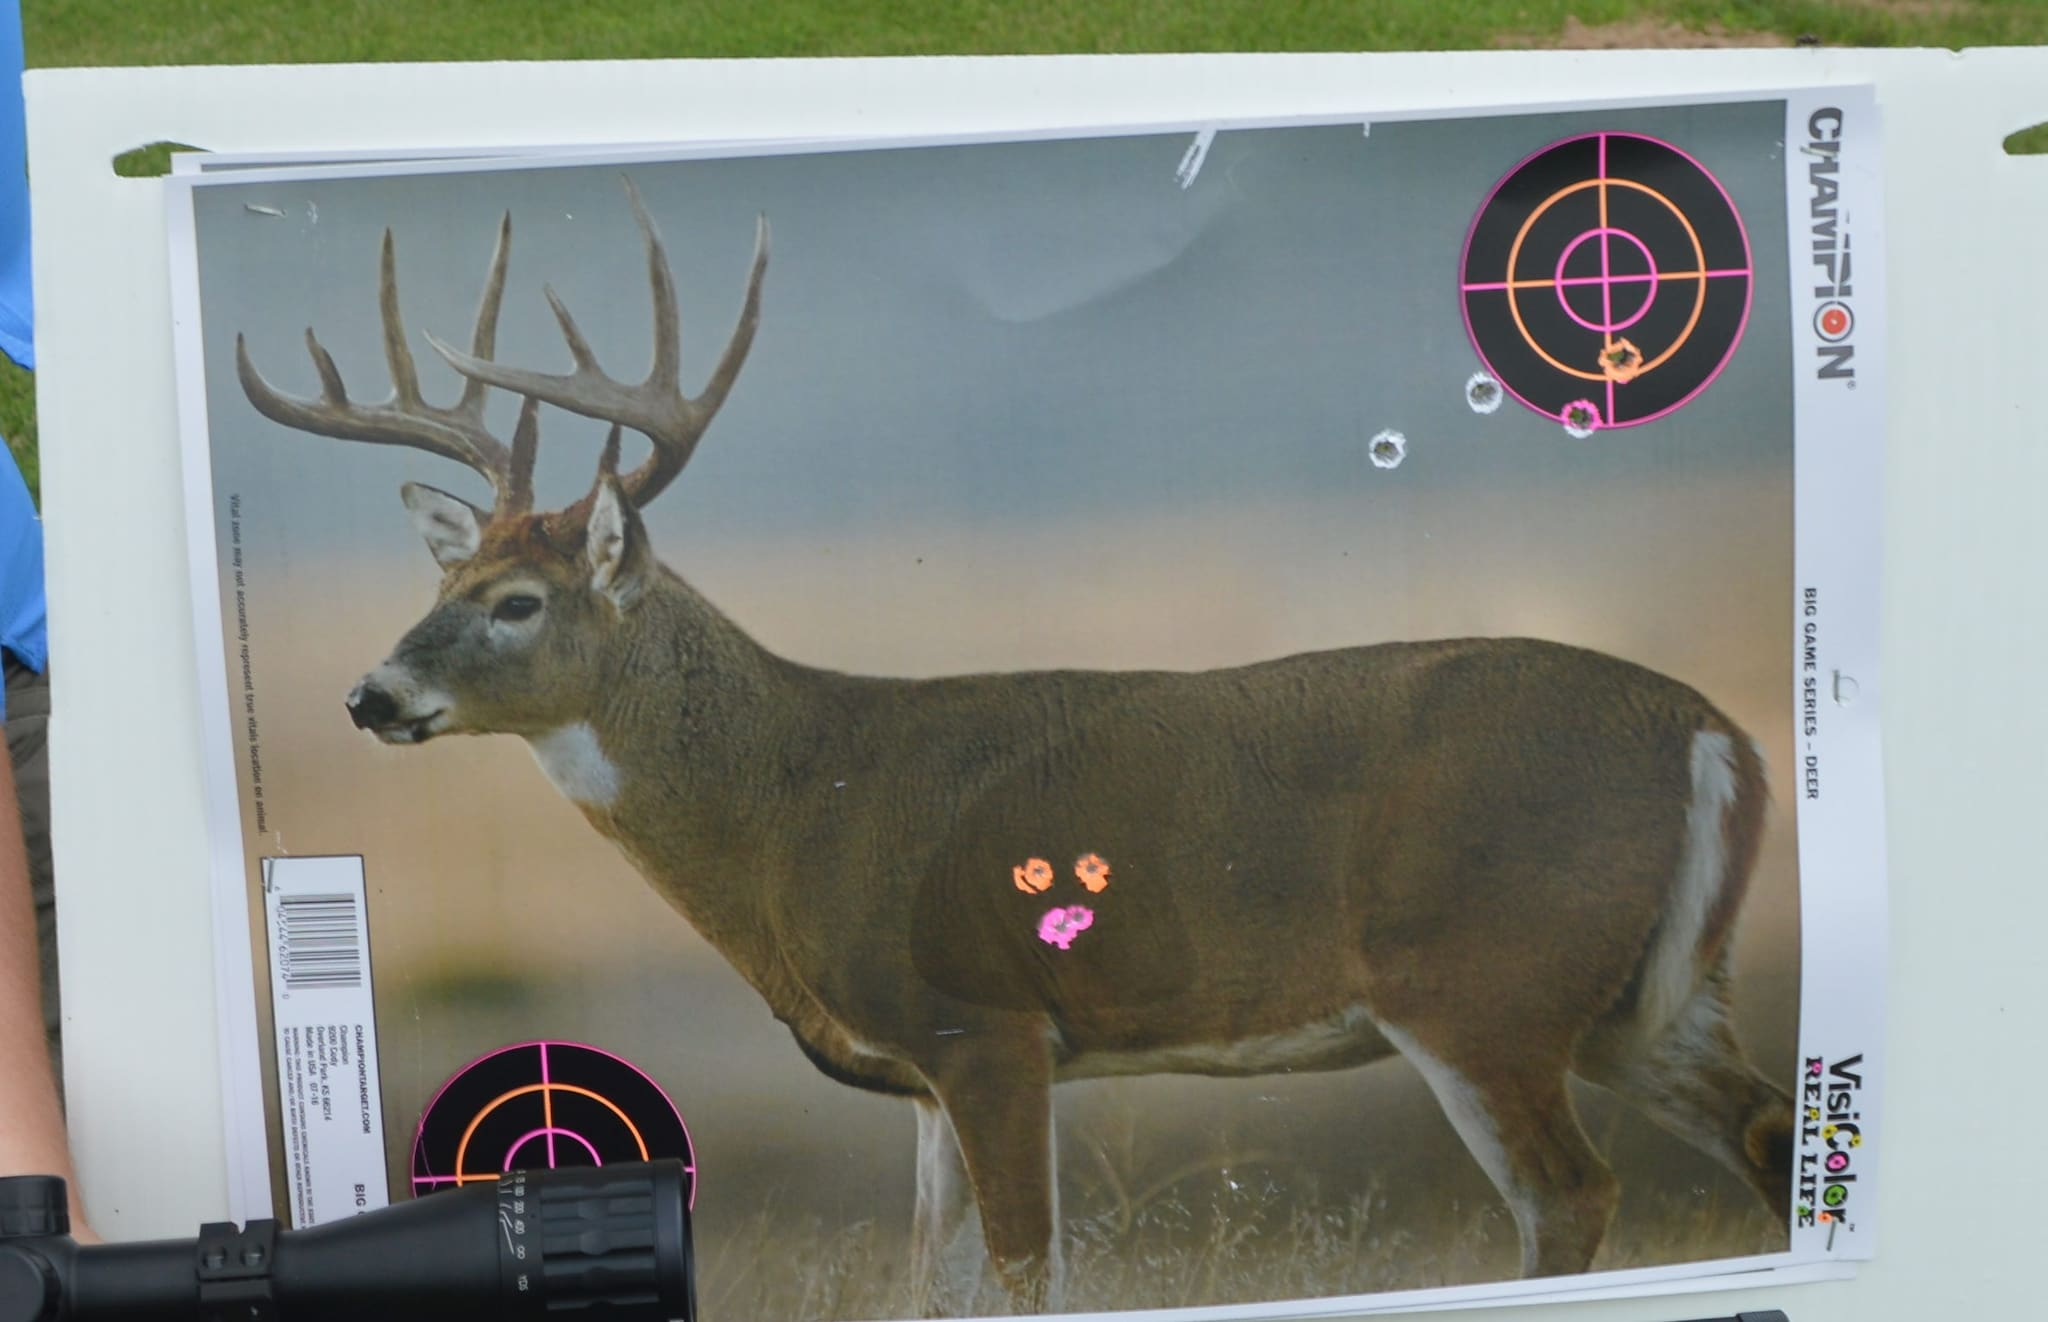 Champion's new VisiColor Real Life Big Game targets are a great sight-in option for hunters. Available in either whitetail, antelope, or bear, these targets are have vital areas marked by different colors. Here you can see heart shots show up as pink, while lung and outer vitals are orange. Smaller bullseyes in the corners allow for further target practice. (Photo: Kristin Alberts)